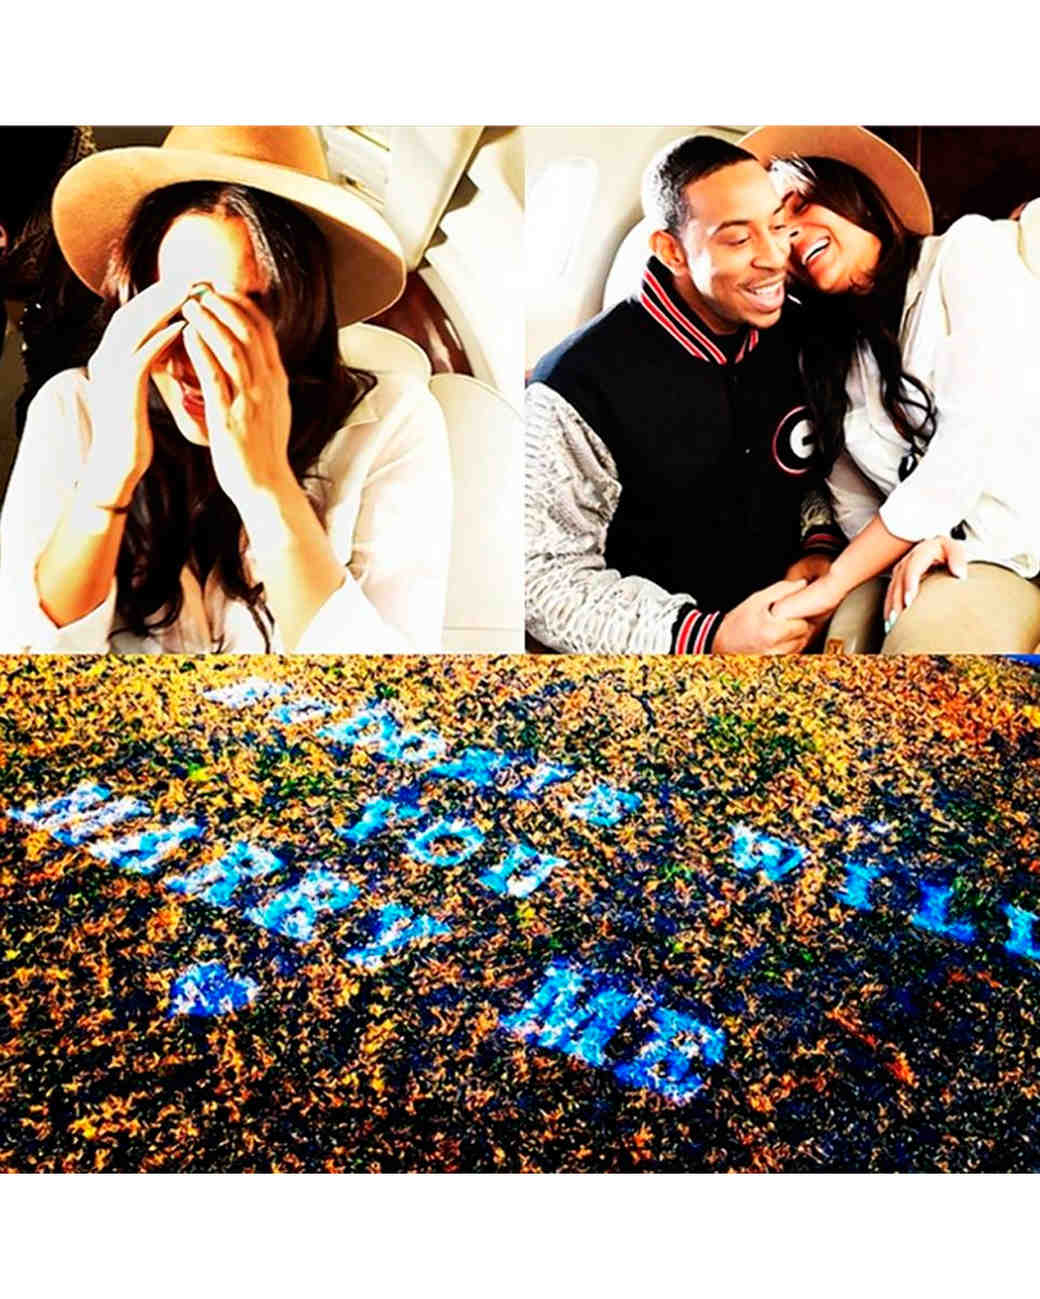 celebrity-proposal-stories-ludacris-1215.jpg